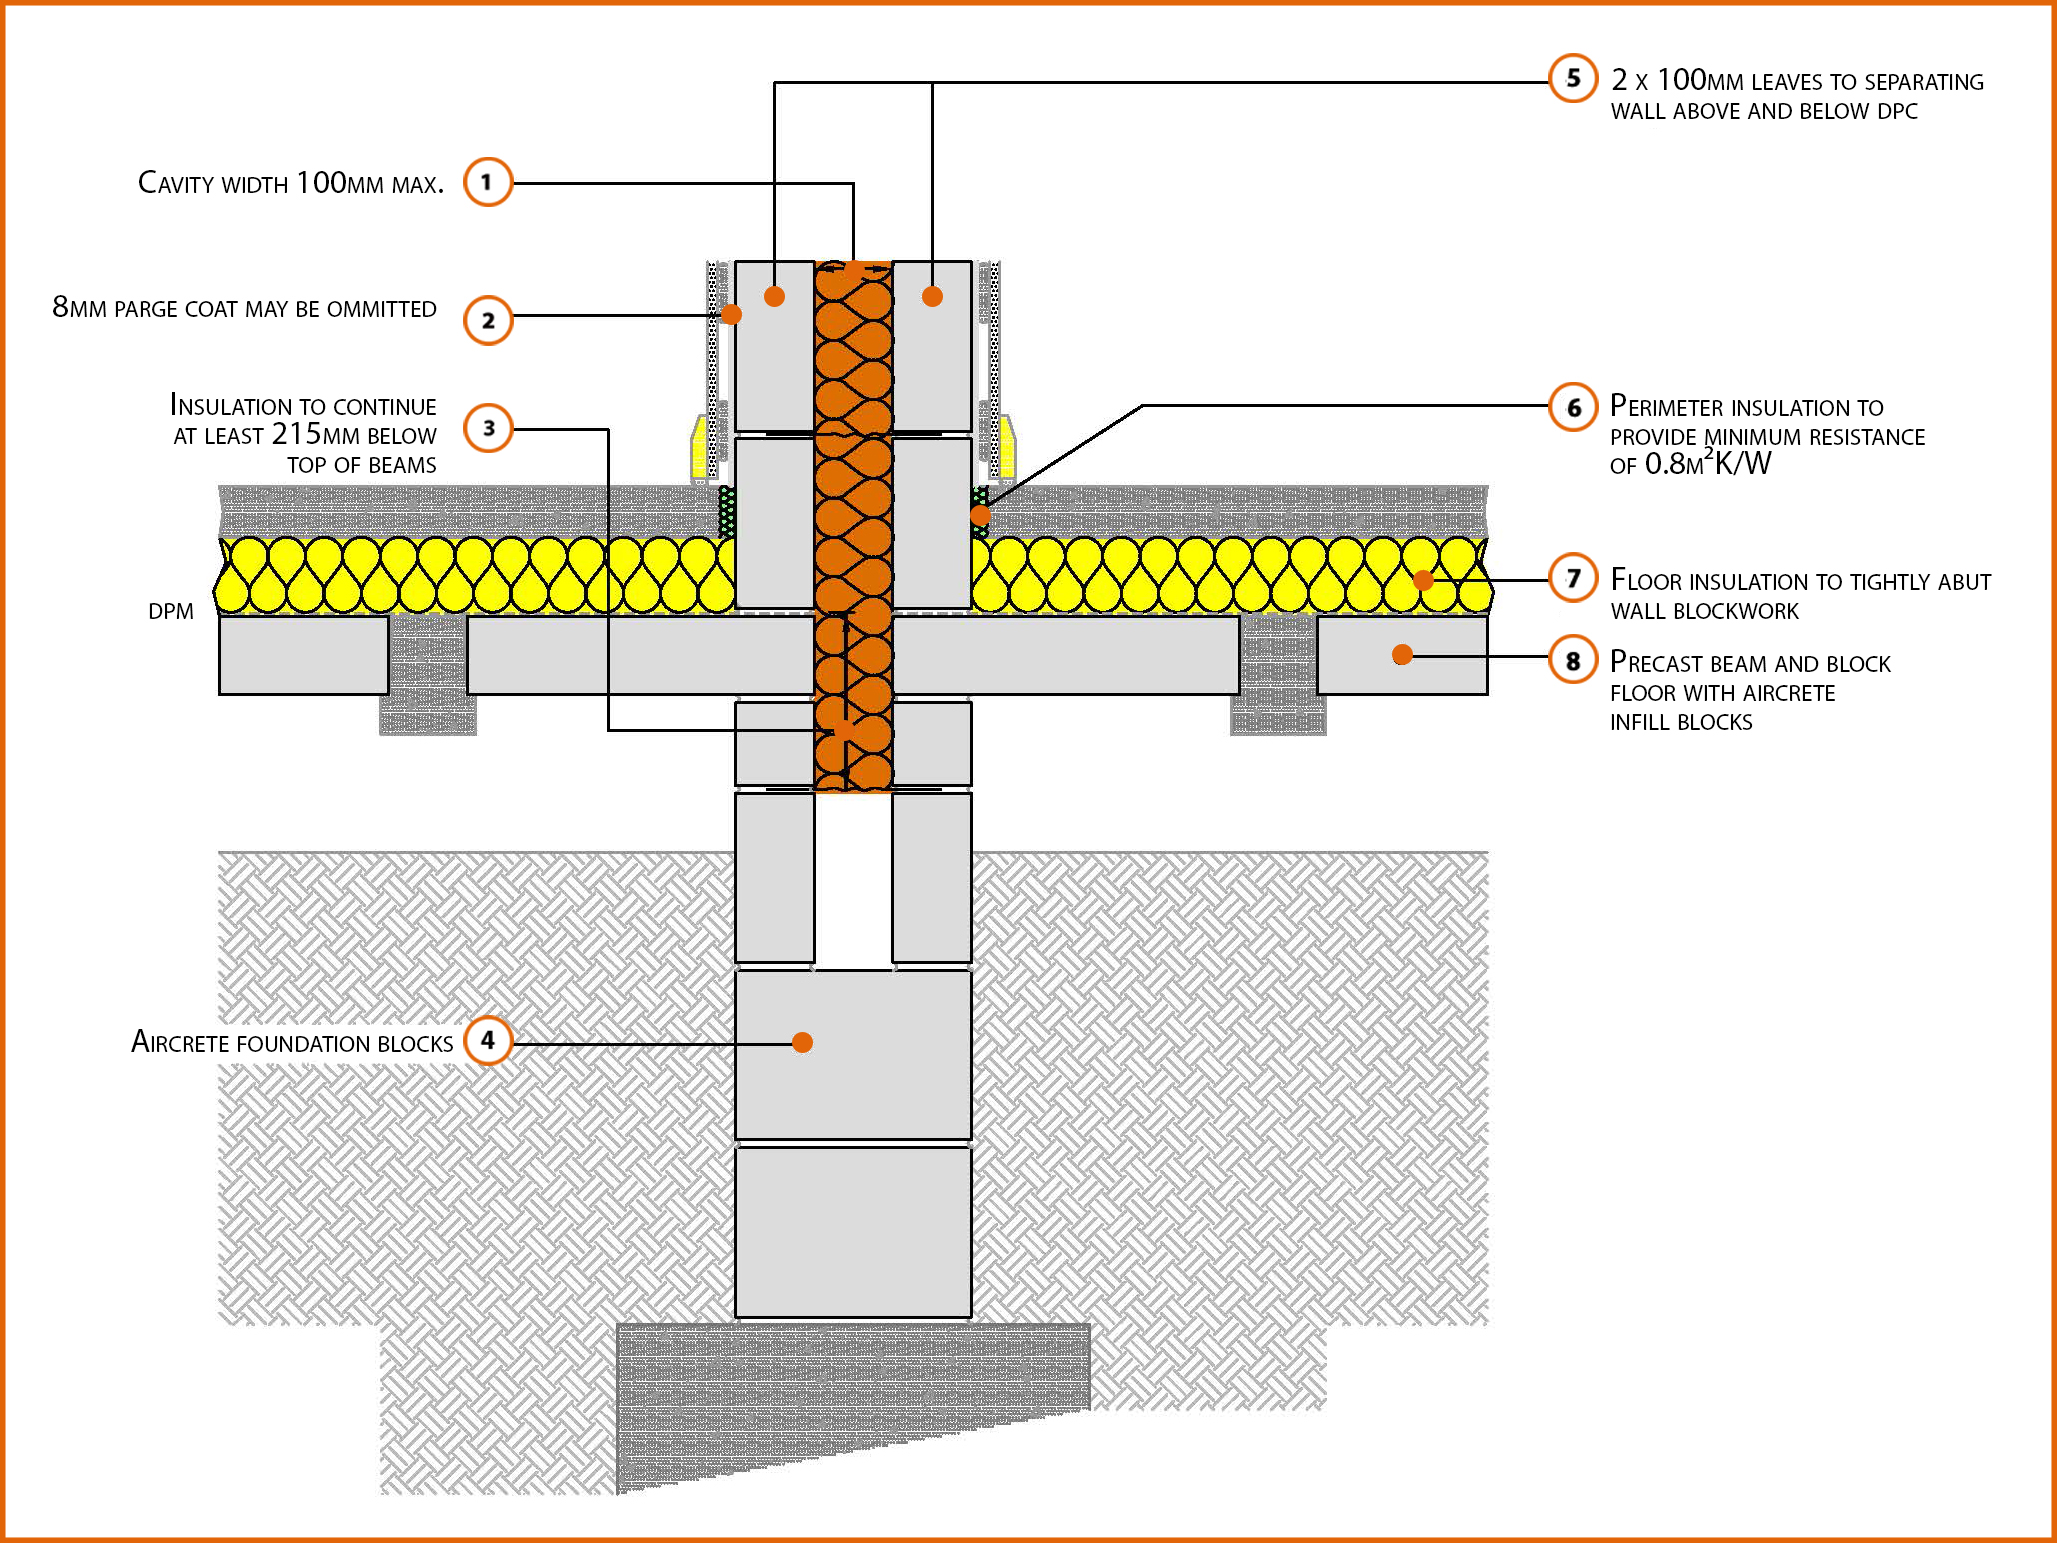 P1pcff2 Suspended Beam And Block Floor Insulation Above